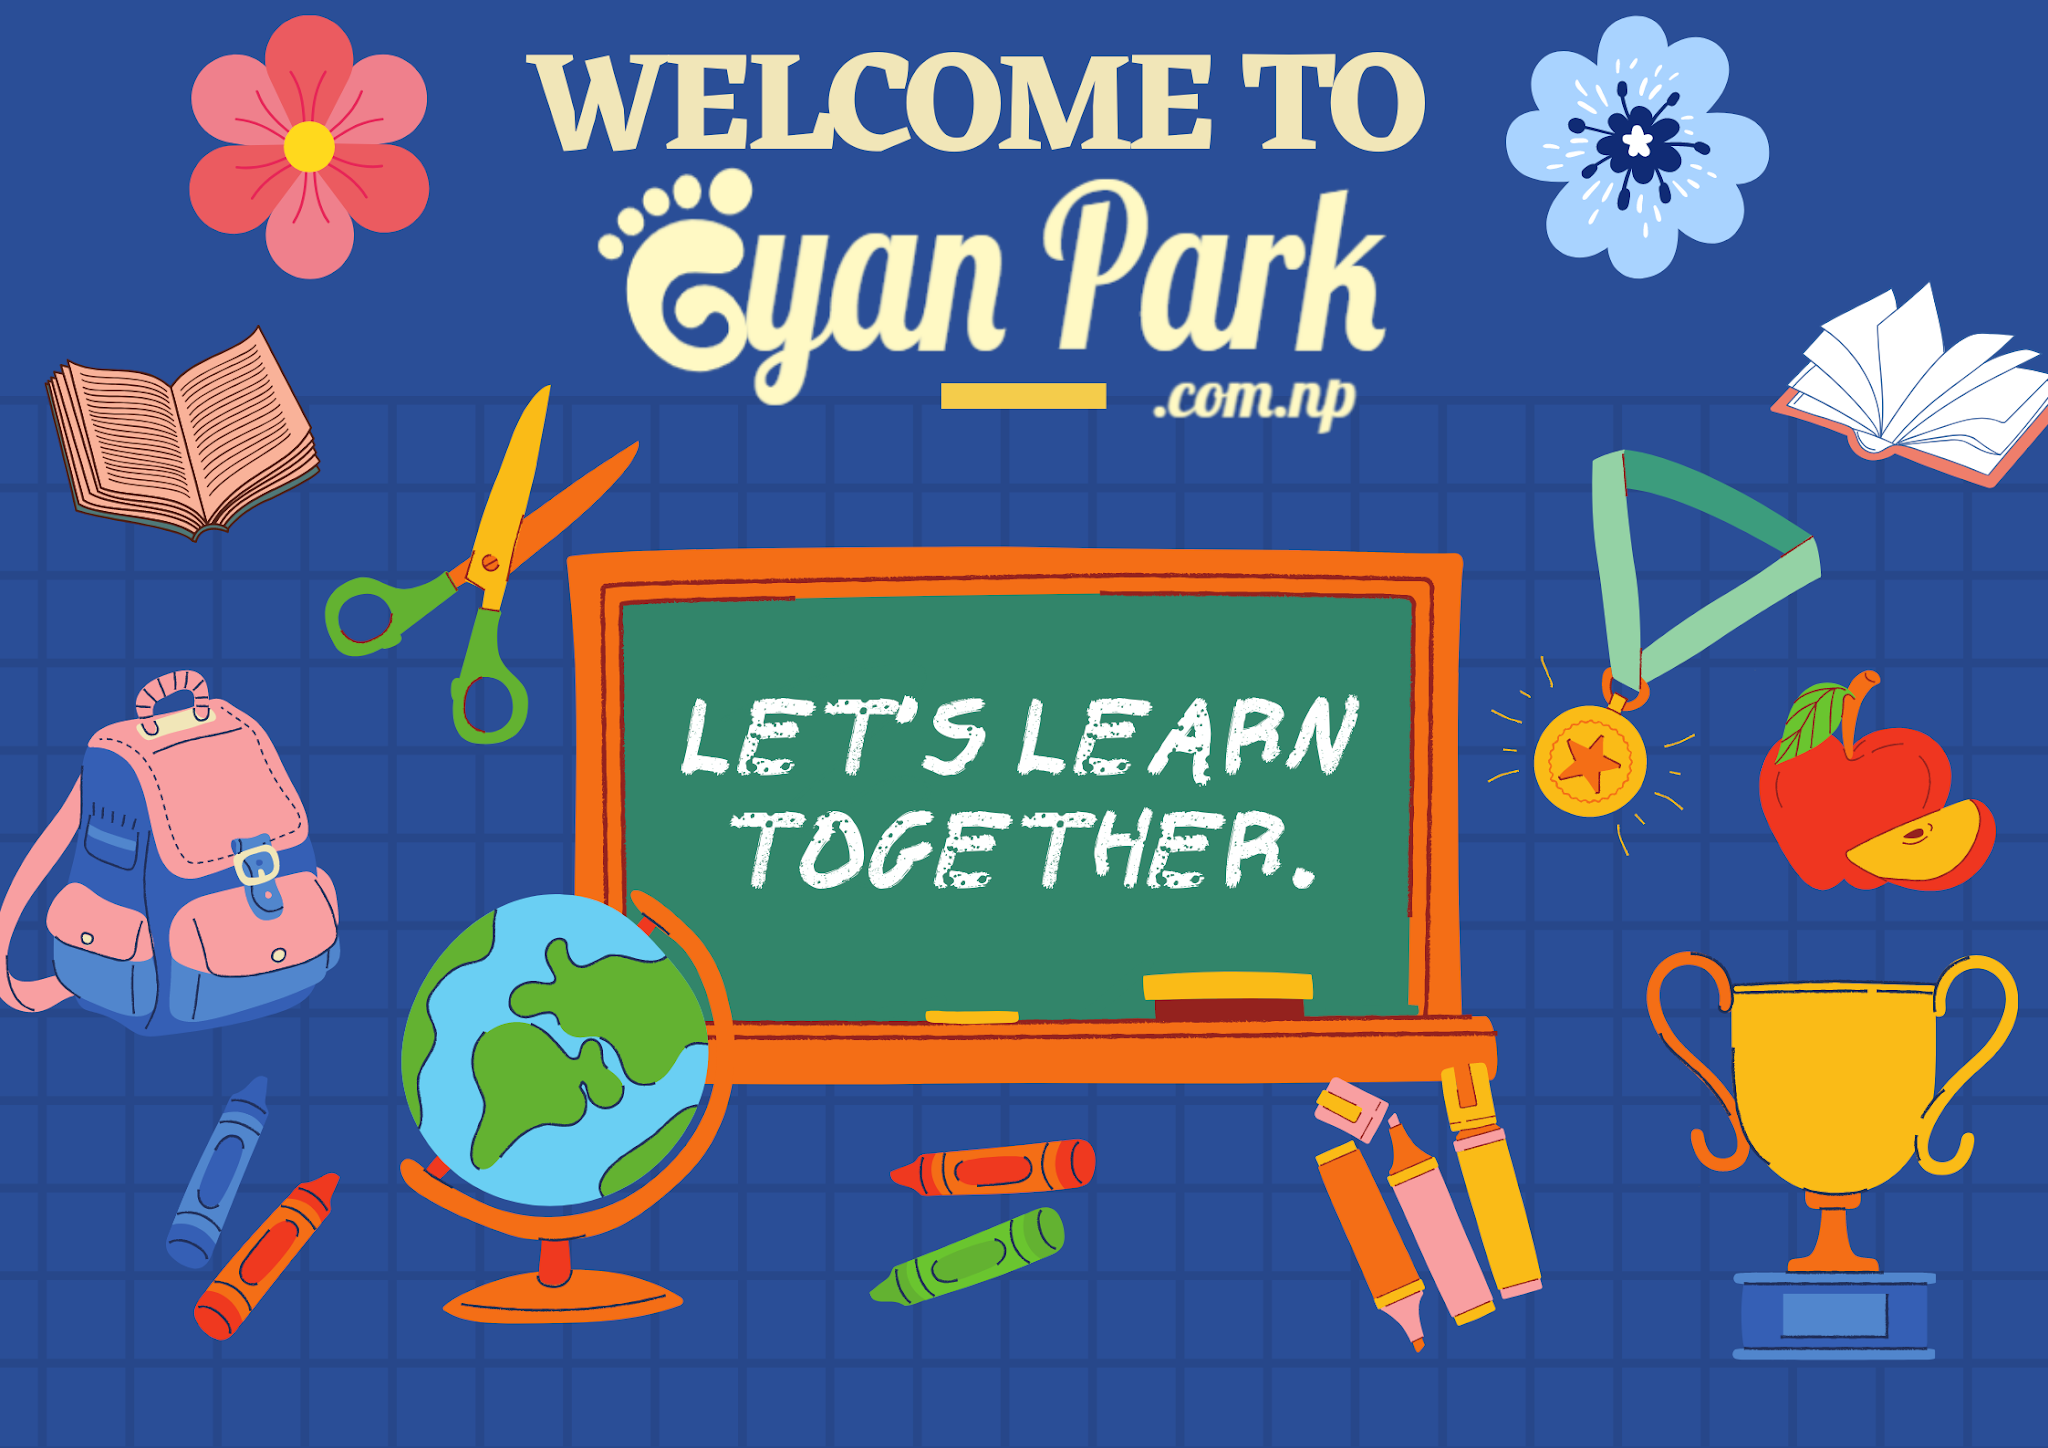 Namaste and a warm welcome to GyanPark, a free resource site for tips and tricks, travel and tours, science and health, computer and technology, recent happenings, important data, and so on. At Gyan Park, our main goal is to provide precise information and happenings, and also cutting-edge helpful tutorials.